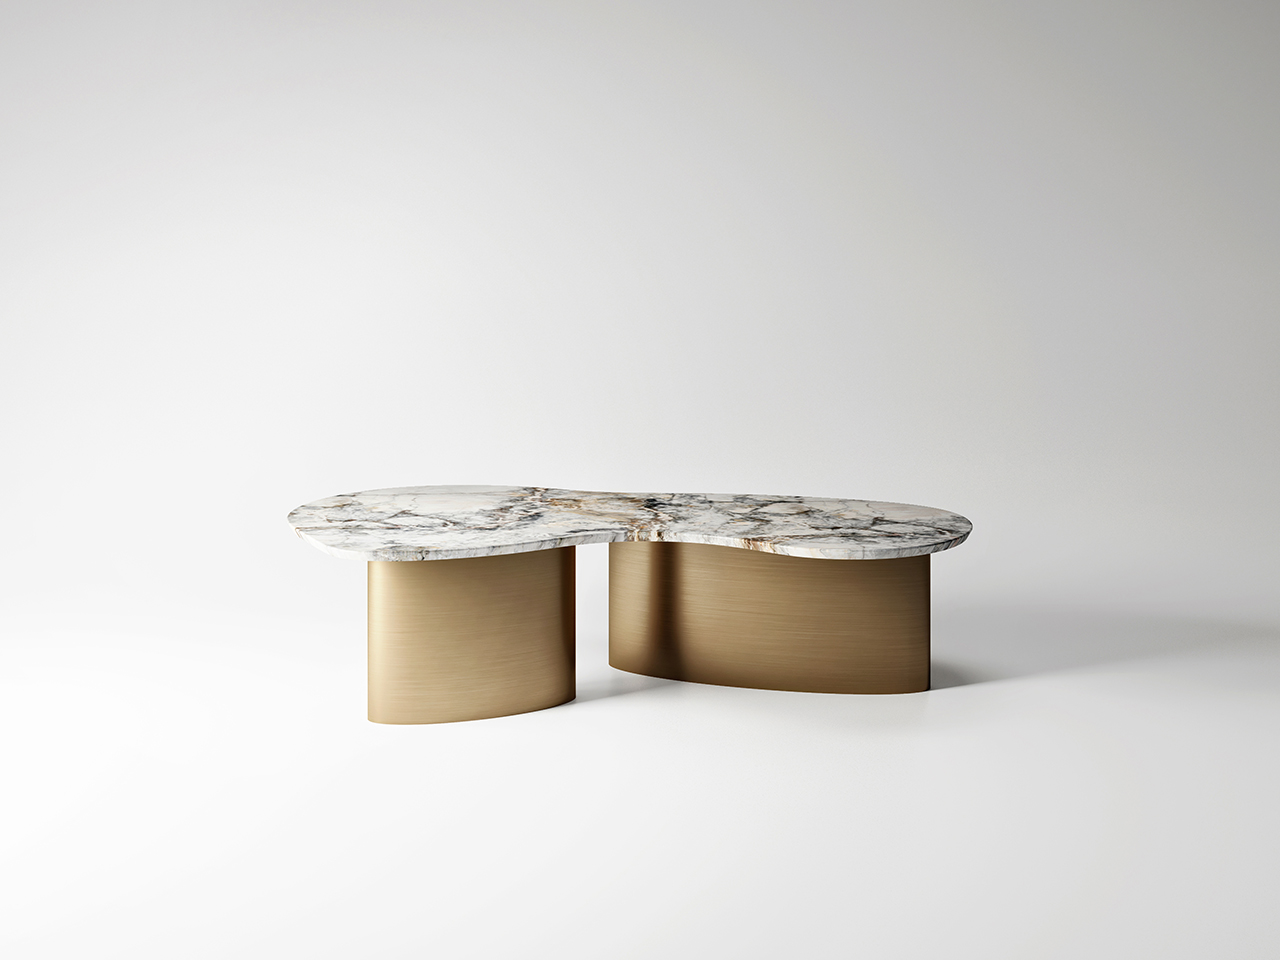 metal and marble coffee table on white background